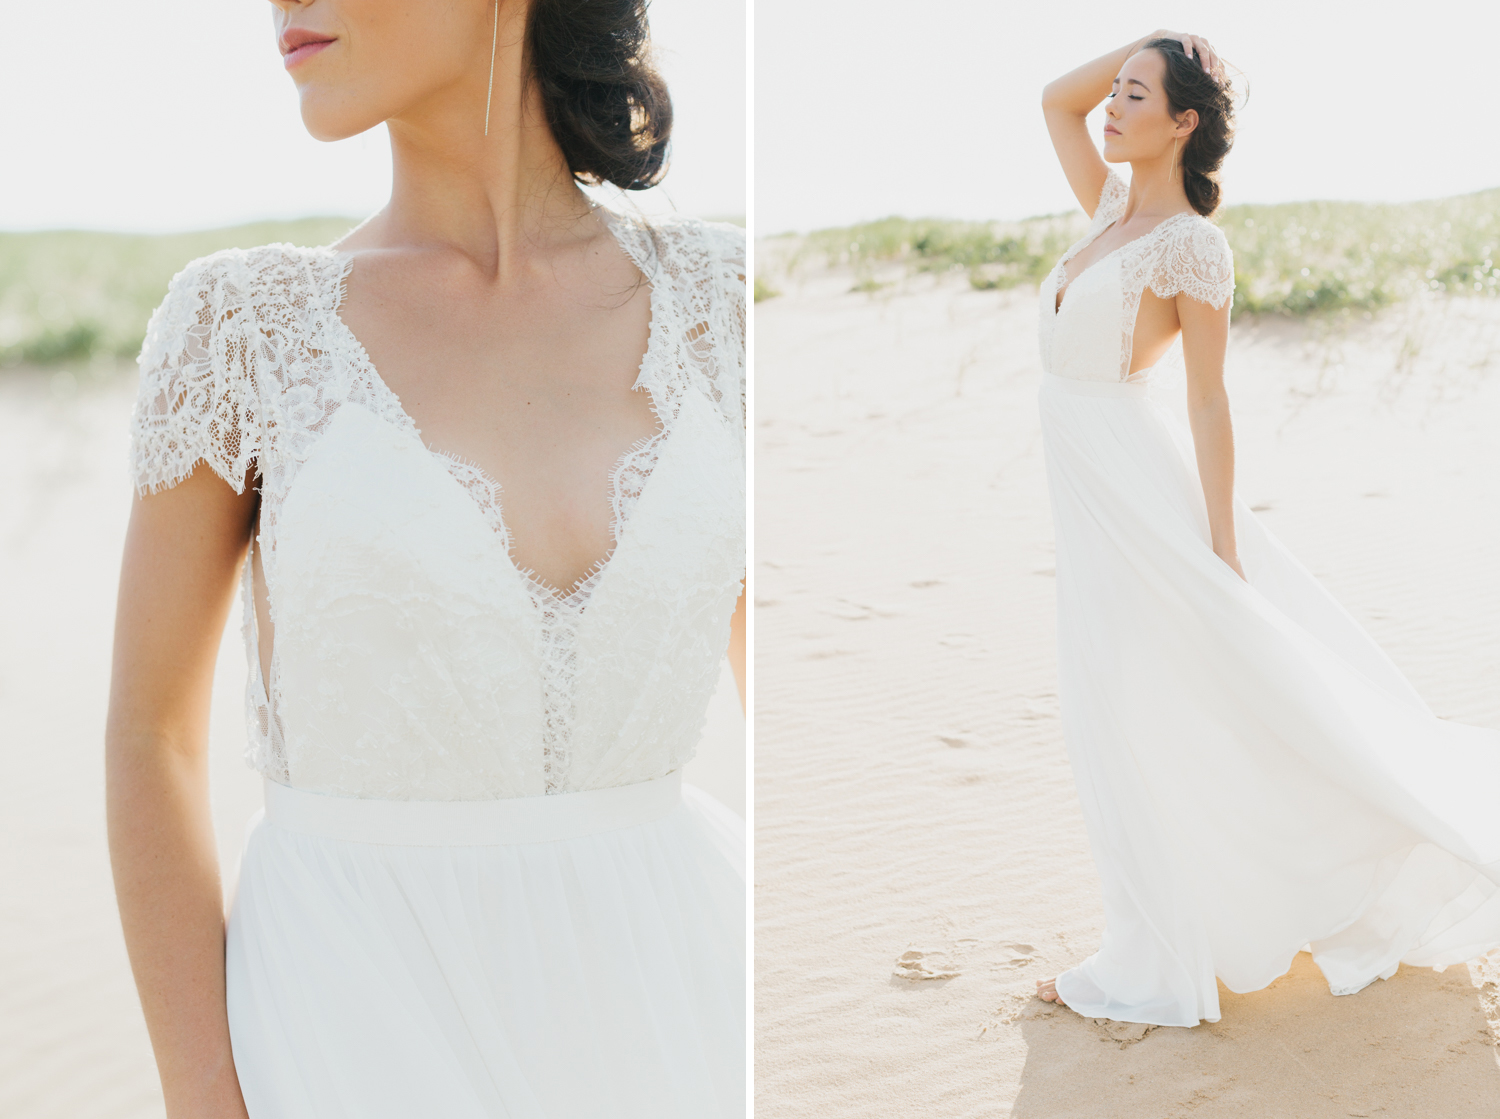 Sleeping Bear Dunes Bridal Portraits Wedding Photographer Mae Stier-001.jpg